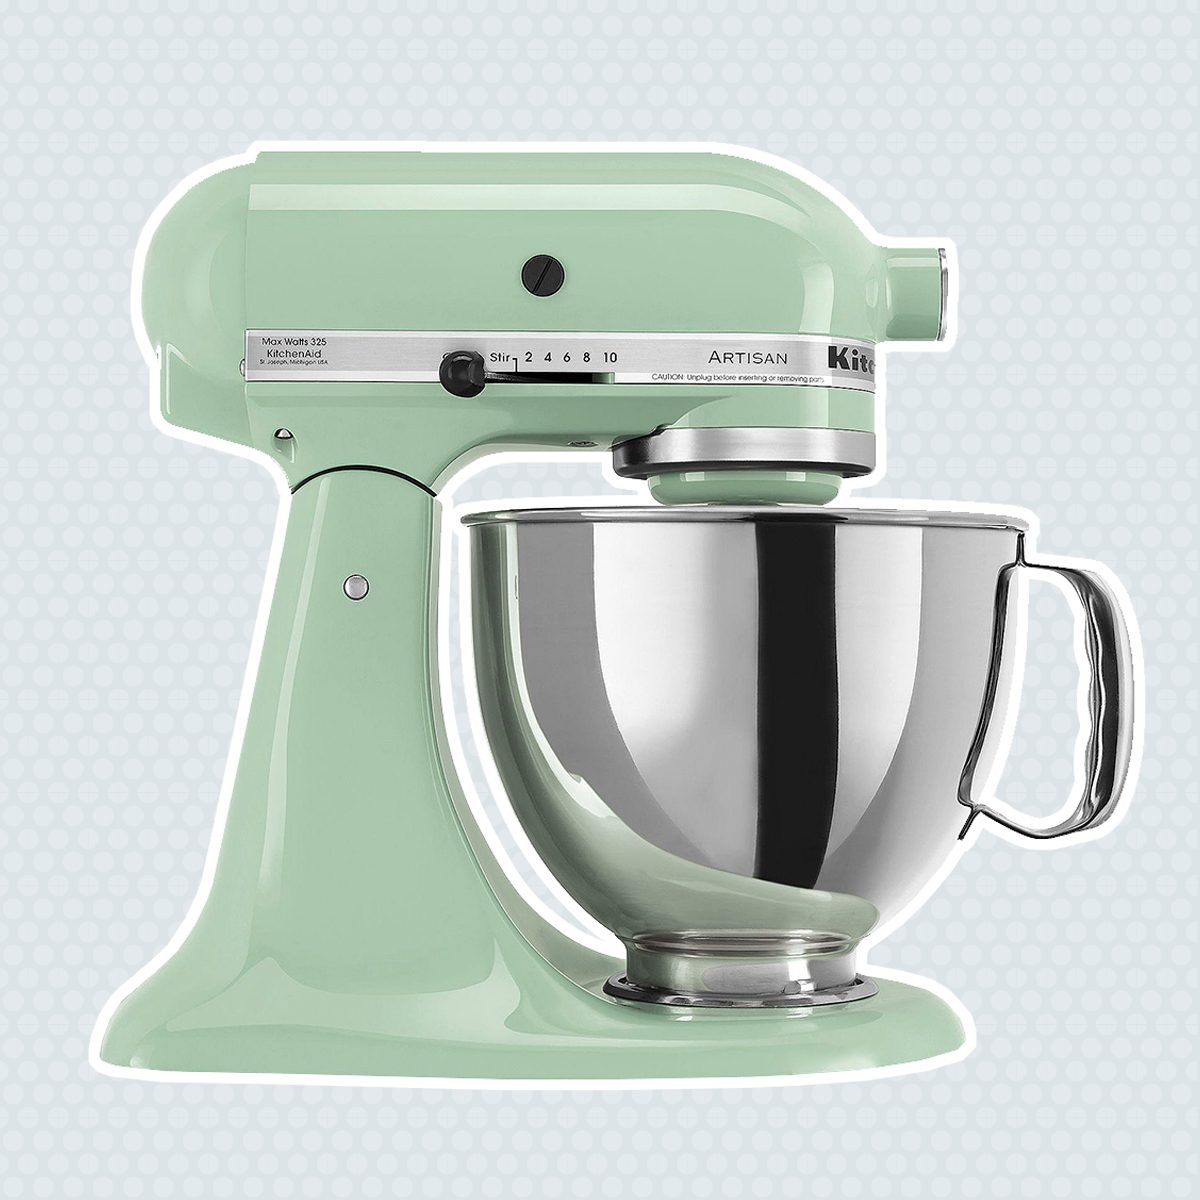 Küchenmaschine Bosch Vs Kitchenaid Kitchenaid Standmixer Im Test